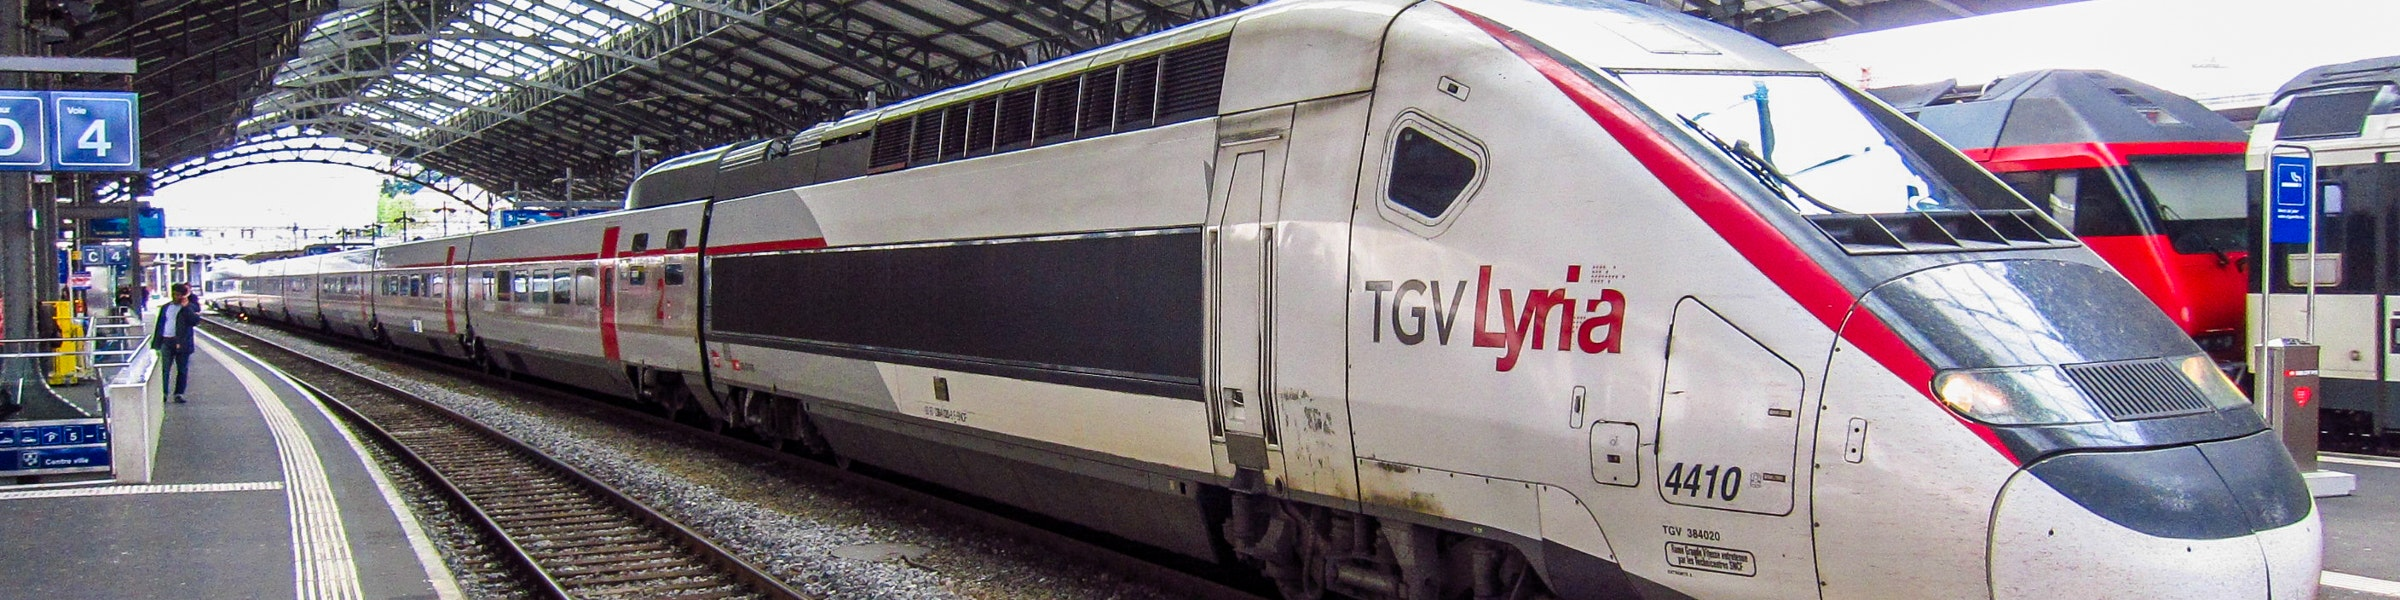 TGV Lyria train Lausanne